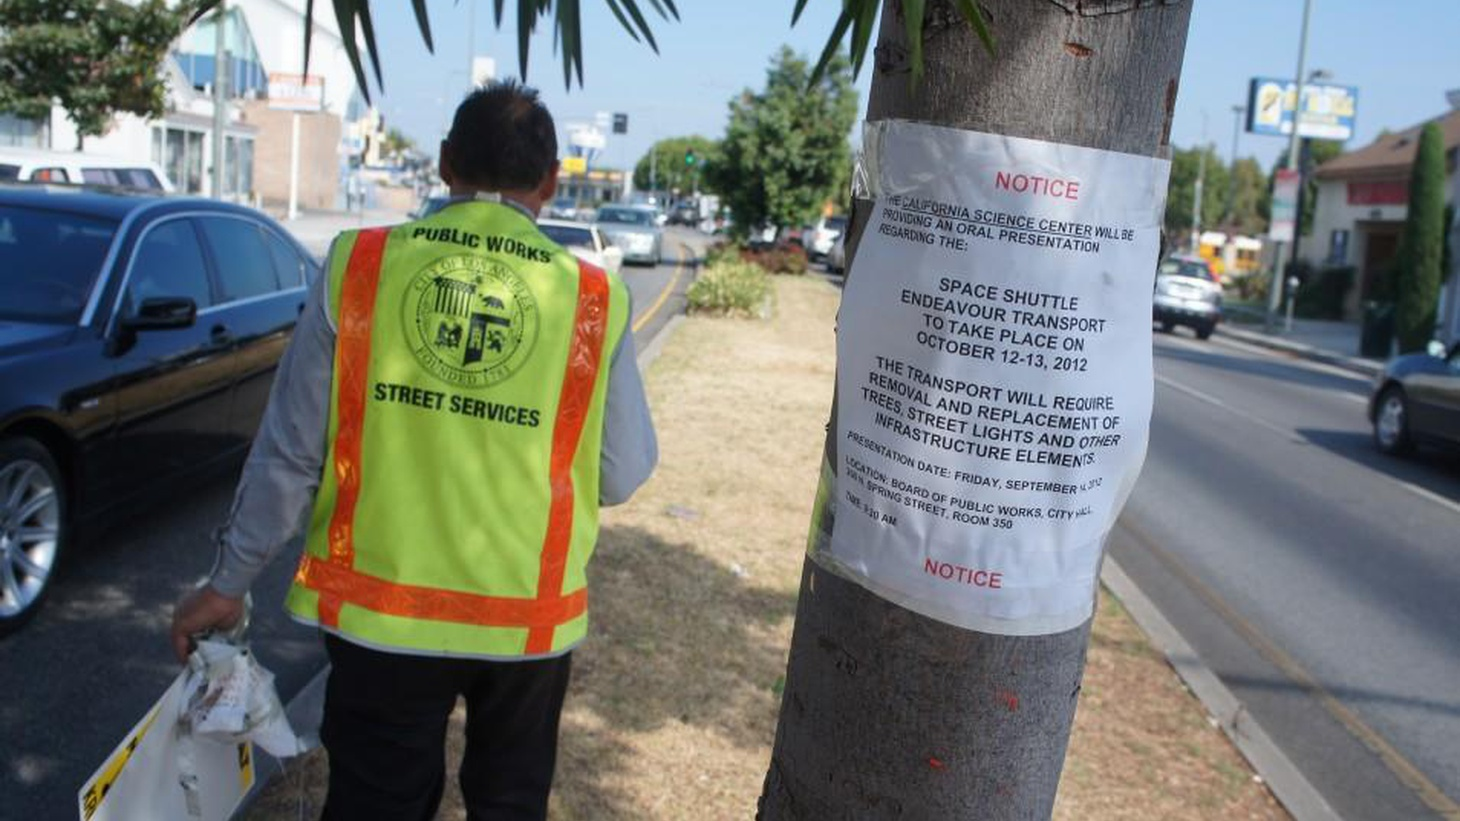 Hundreds of tall old trees in LA and Inglewood are being cut down to make way for the Space Shuttle Endeavour to travel from LAX to Exposition Park. Is it worth the sacrifice?